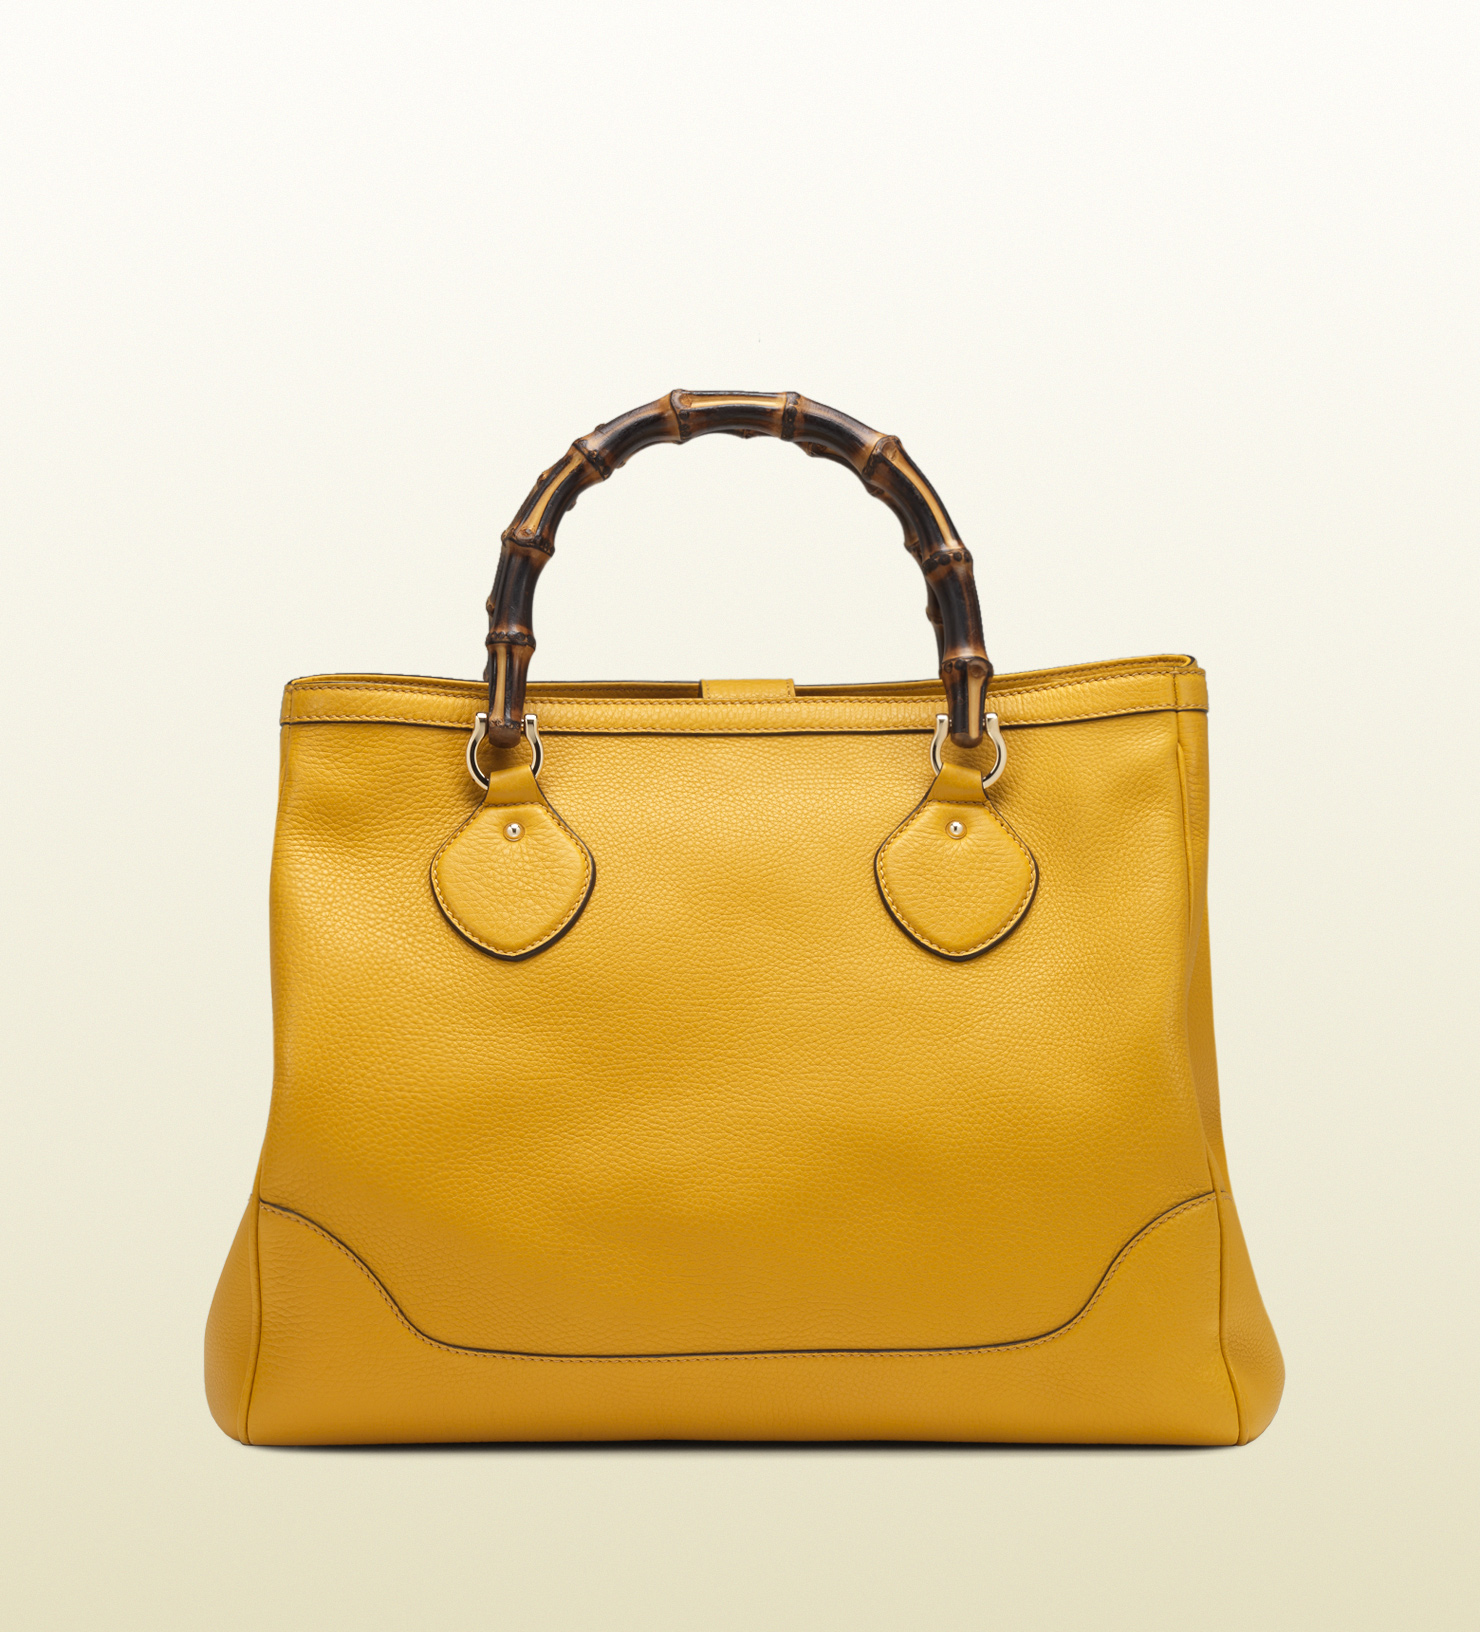 5e7ab878c Gucci Diana Yellow Leather Bamboo Top Handle Tote in Yellow - Lyst